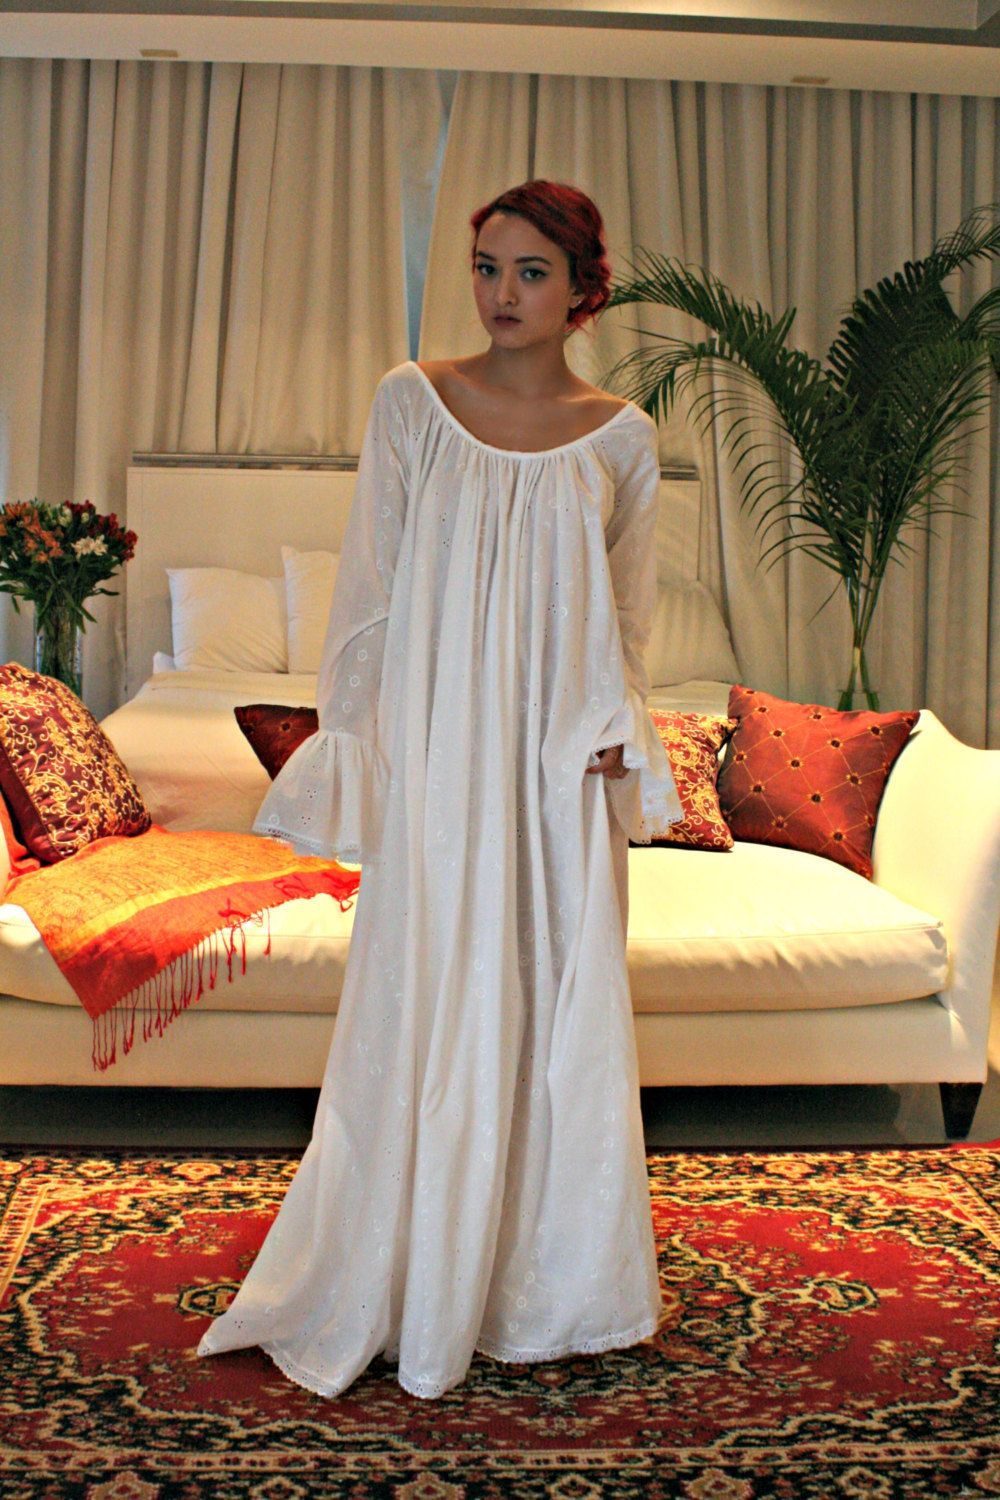 8a8742bf4e 100% Cotton embroidered long sleeve nightgown. This gown is simply  stunning. I love romantic sleepwear